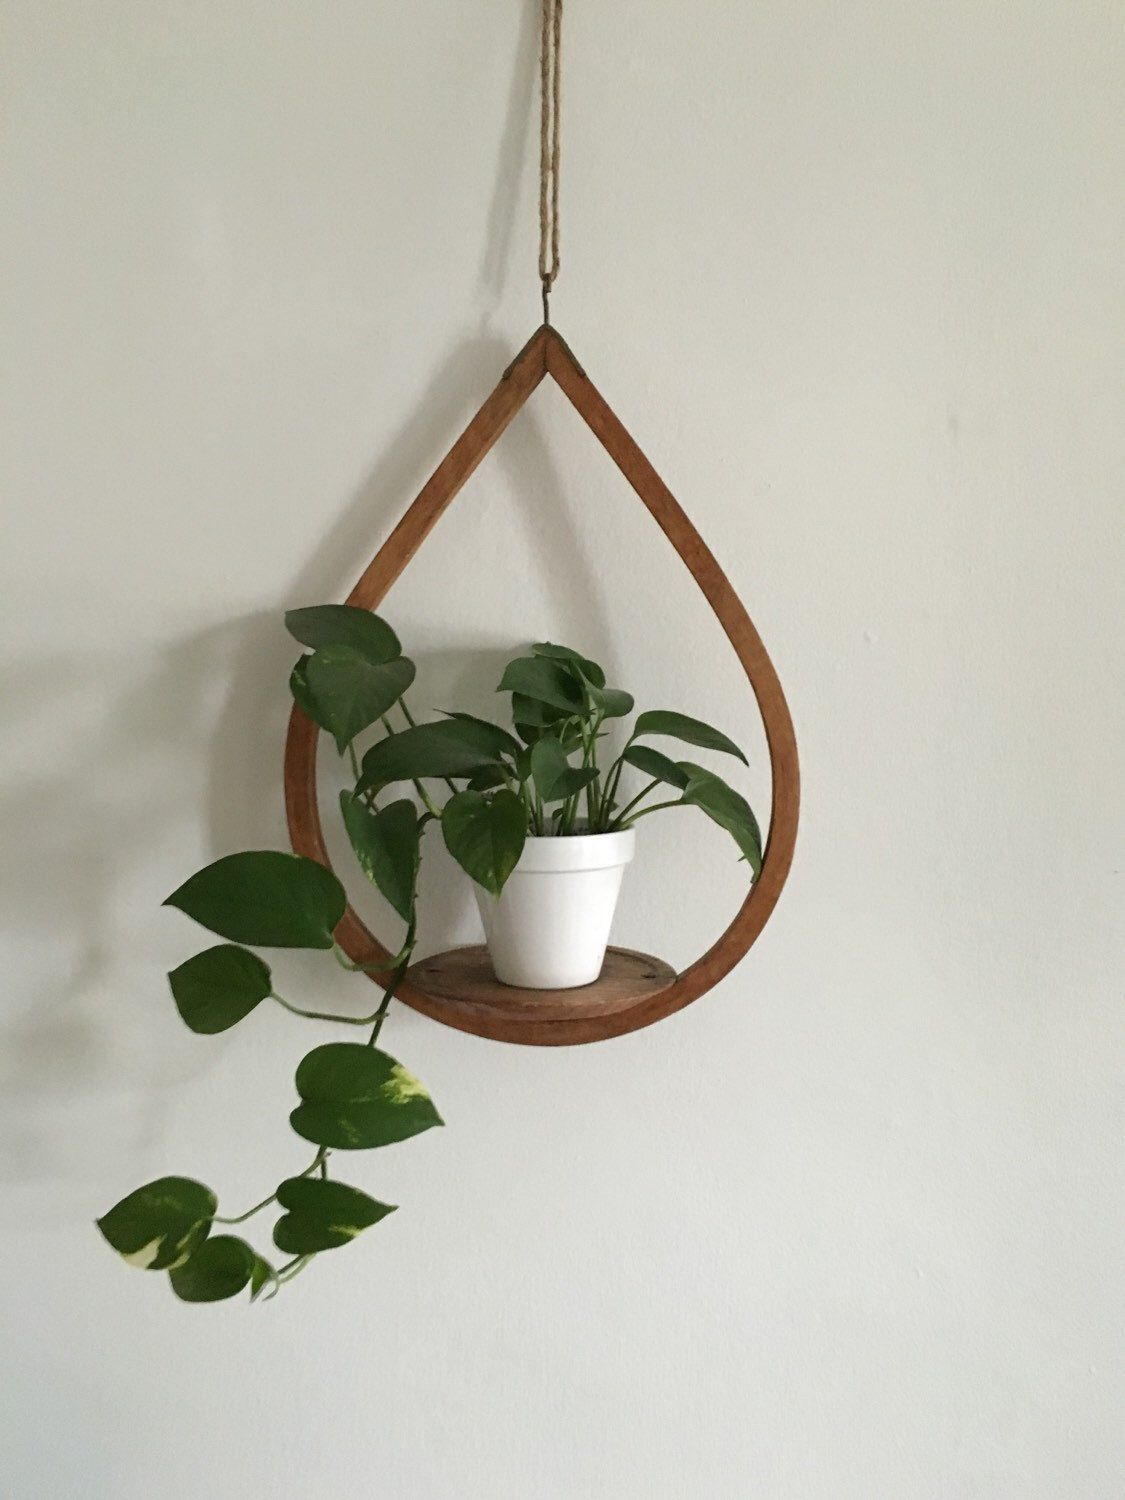 Vintage teardrop wooden mid century geometric plant hanger. hanging  bentwood planter. home decor interior design boho hanging planter